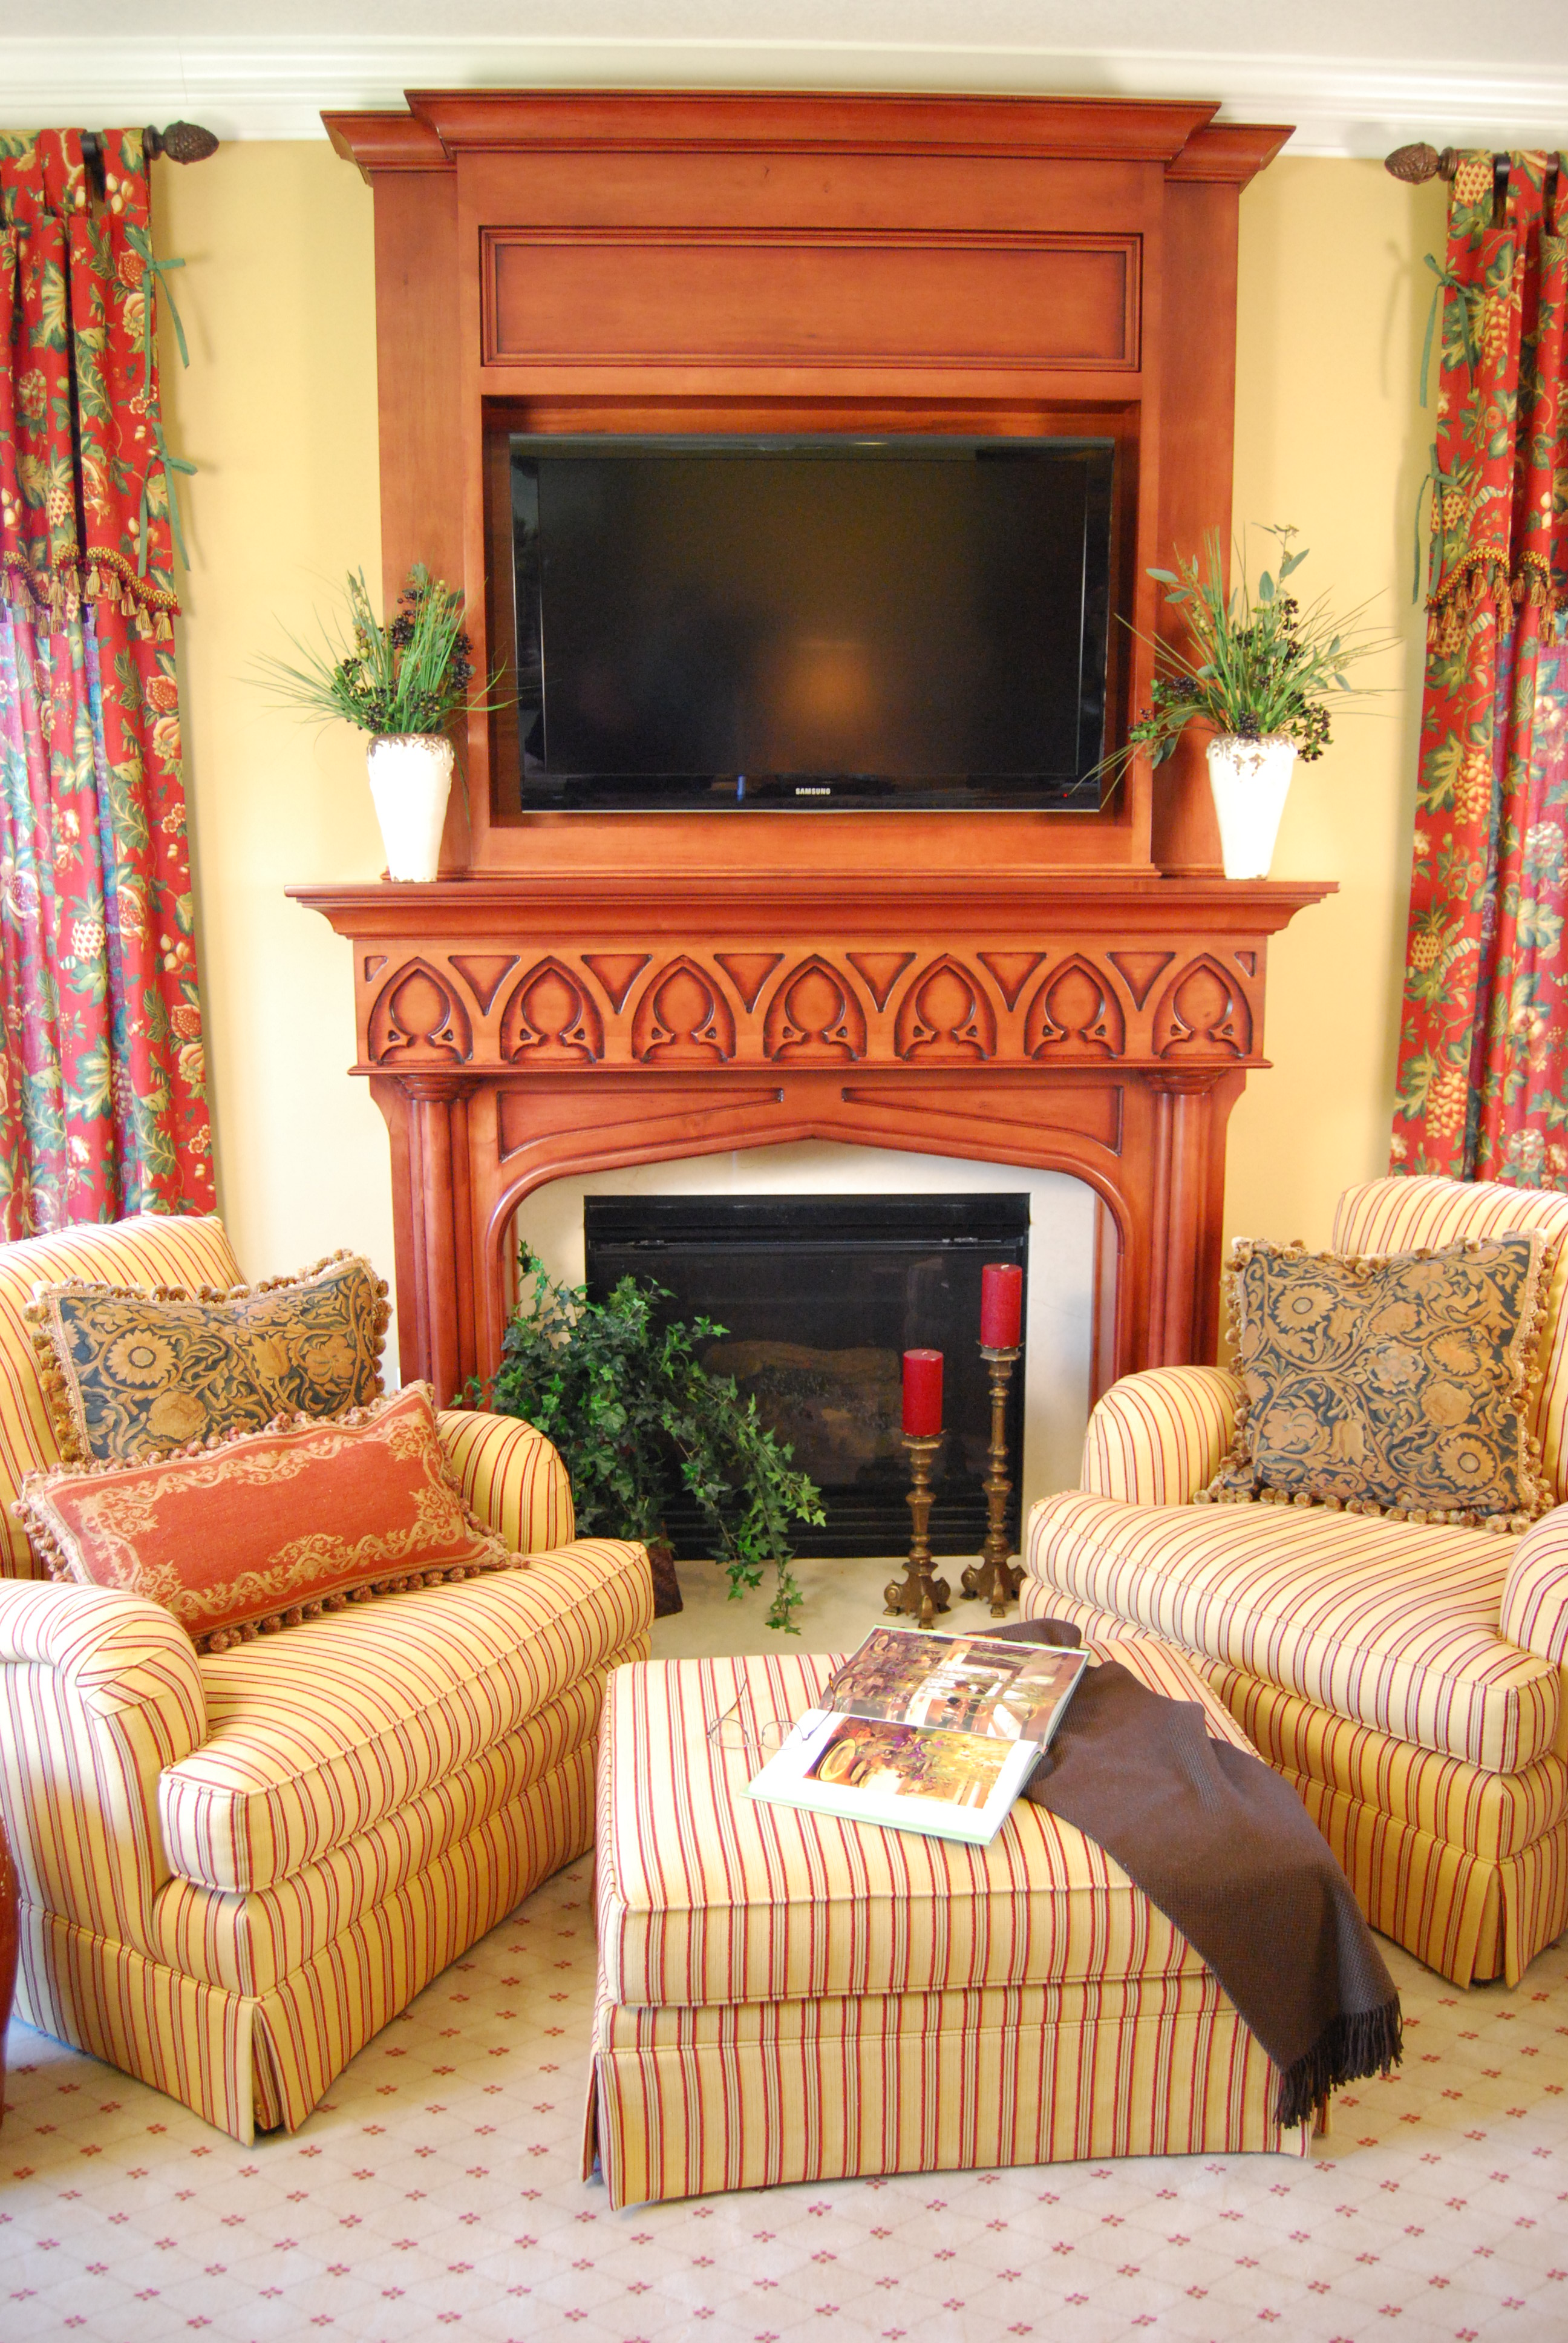 Family Room Fireplace Tall View.JPG